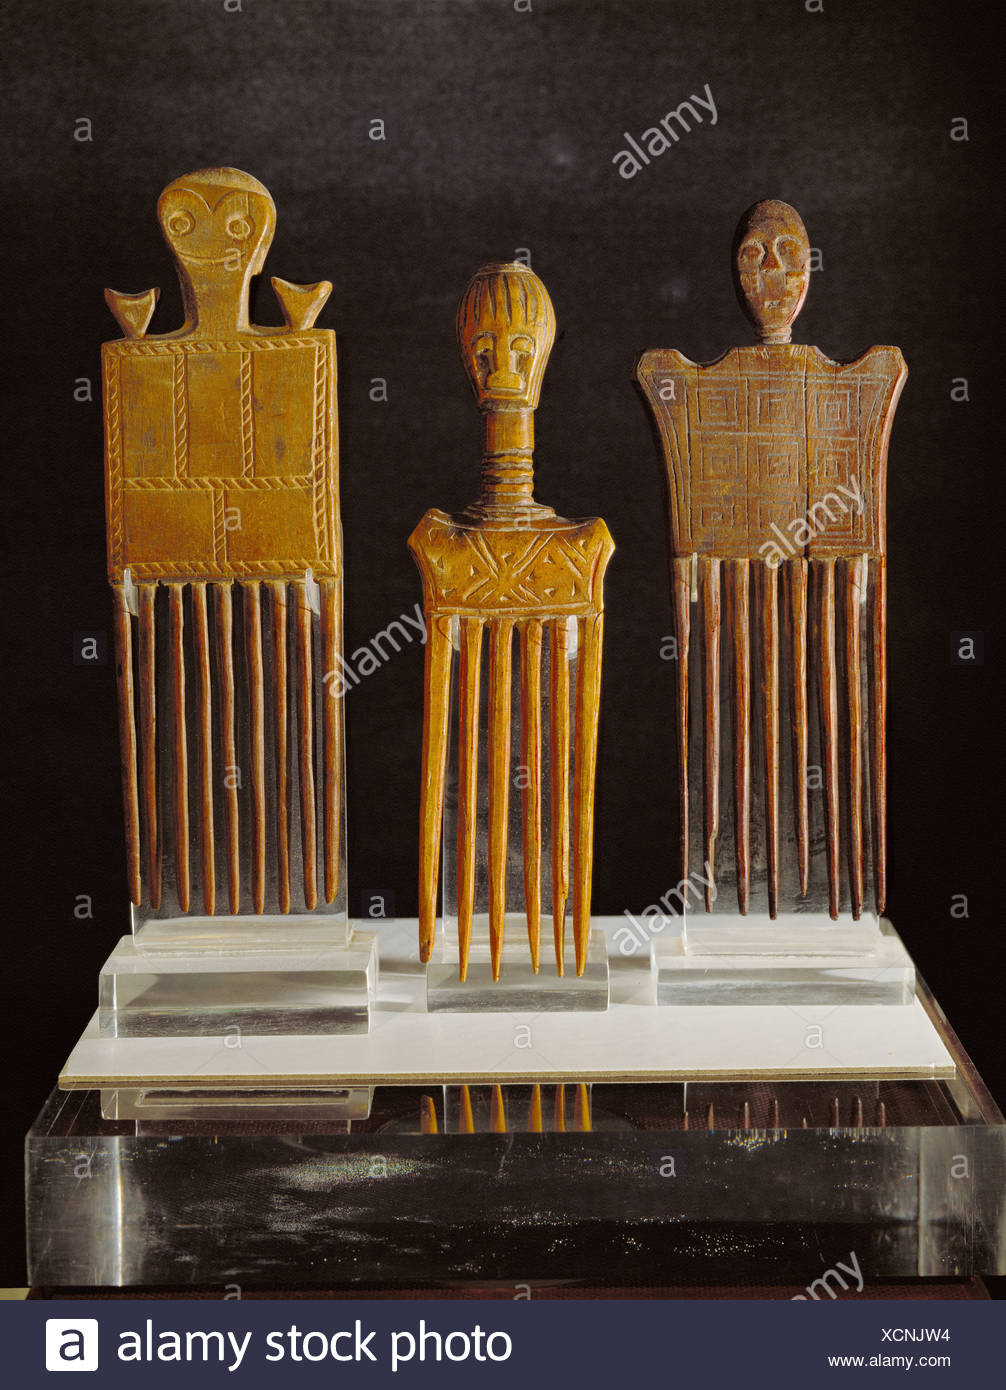 fine arts, Africa, combs, wood, left: Ashanti, right: Akan, Ivory Coast and Ghana, , Artist's Copyright has not to be cleared - Stock Image